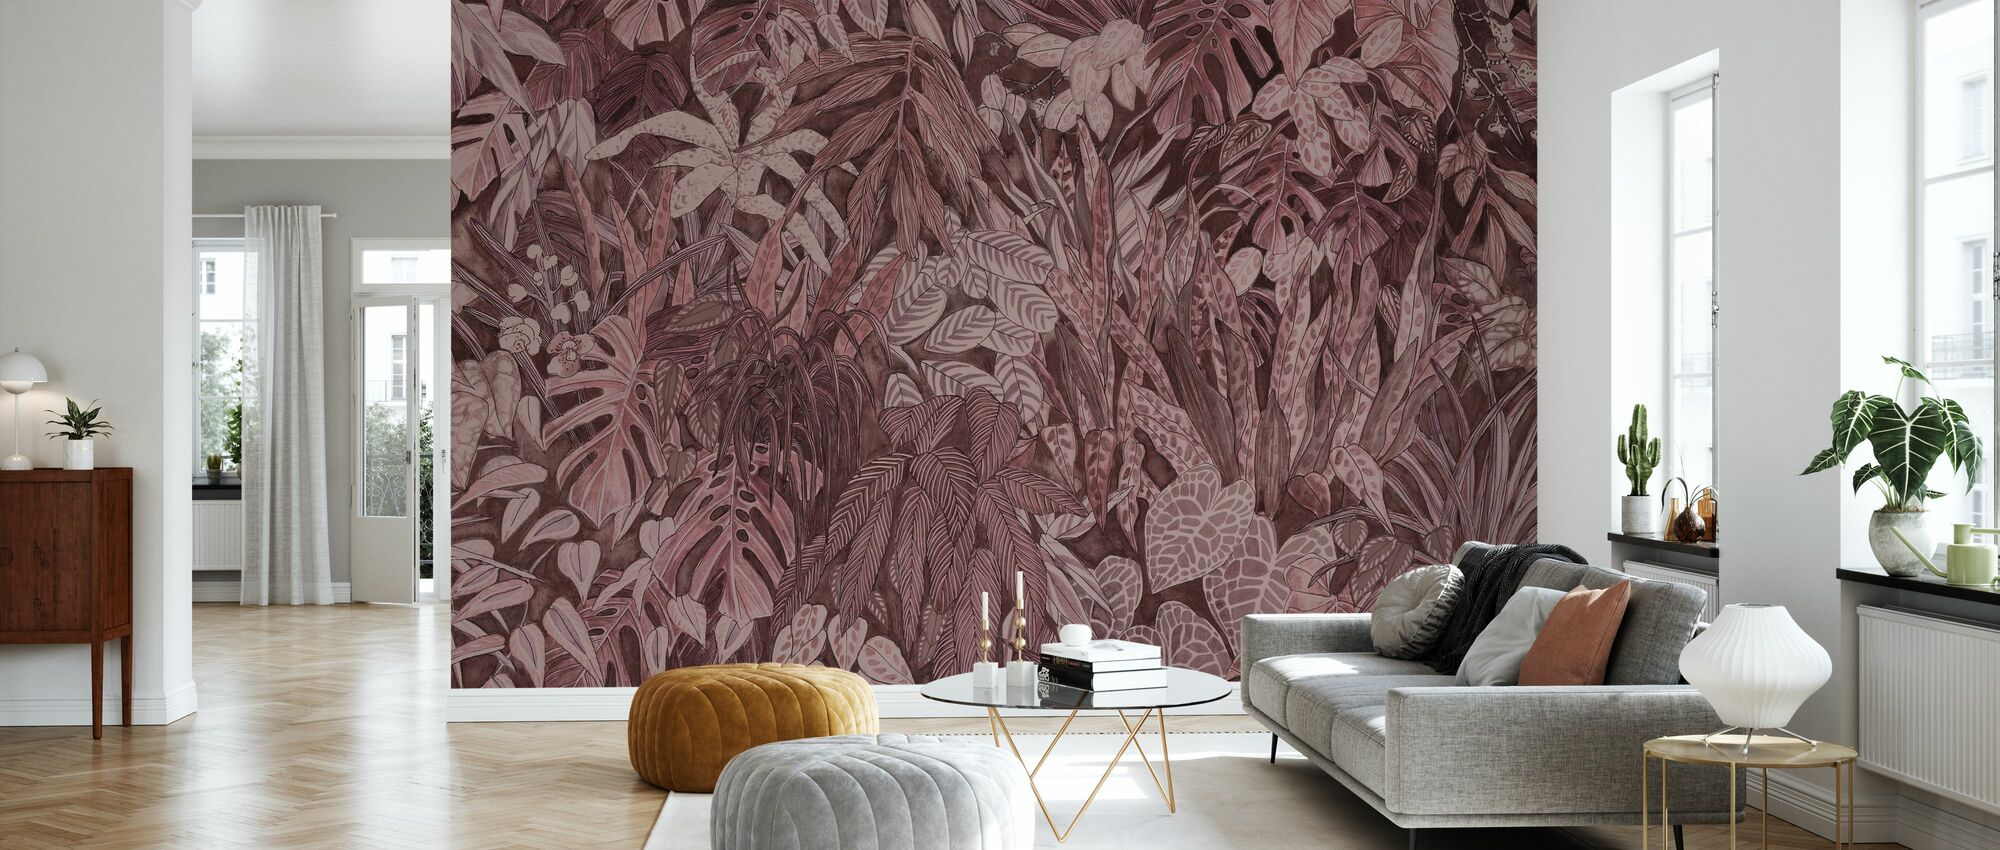 Tanglewood Forest Wall - Clay - Wallpaper - Living Room